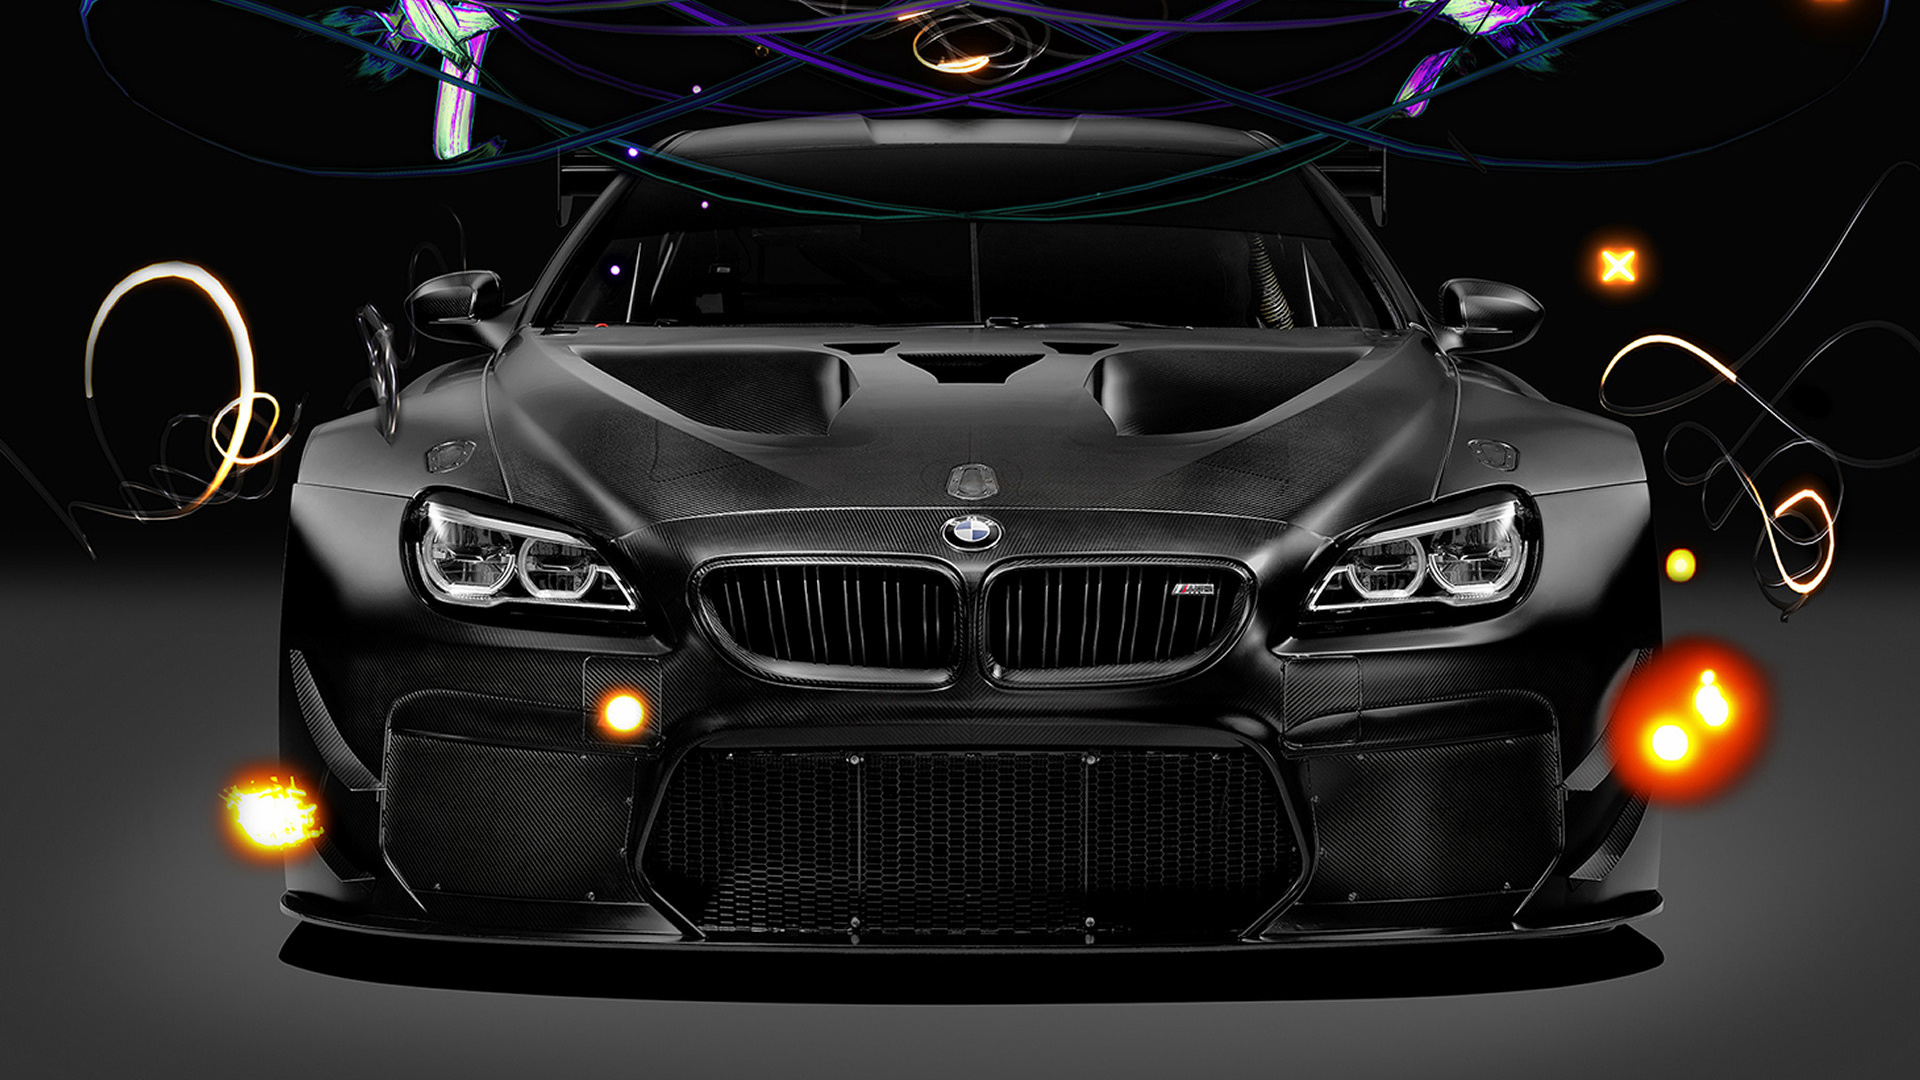 2017 bmw m6 gt3 art car by cao fei wallpapers and hd images car pixel. Black Bedroom Furniture Sets. Home Design Ideas